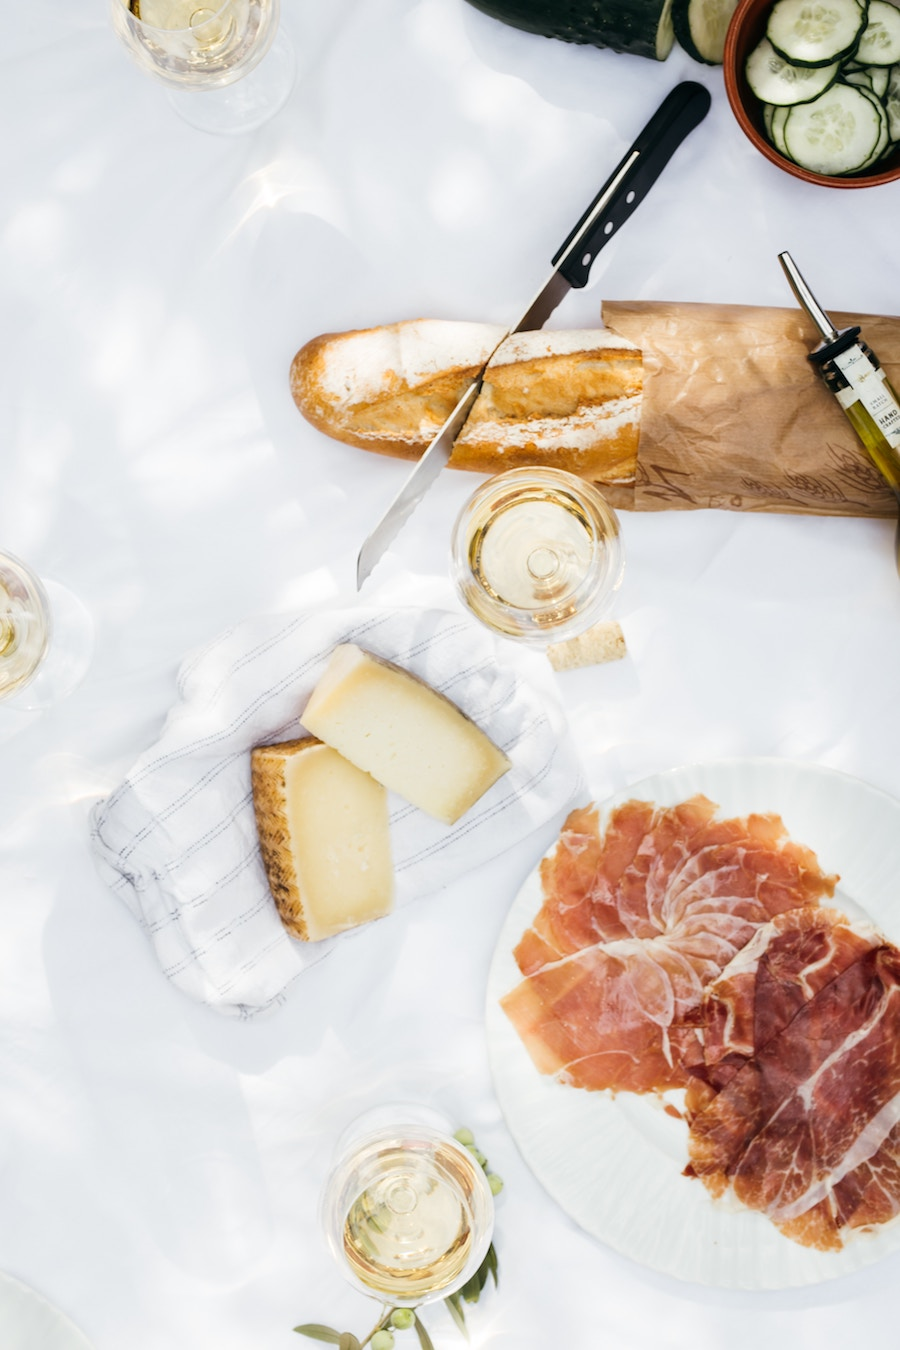 At home date-night ideas: Wine and cheese tasting | Photo by Ingrid Hofstra via Unsplash